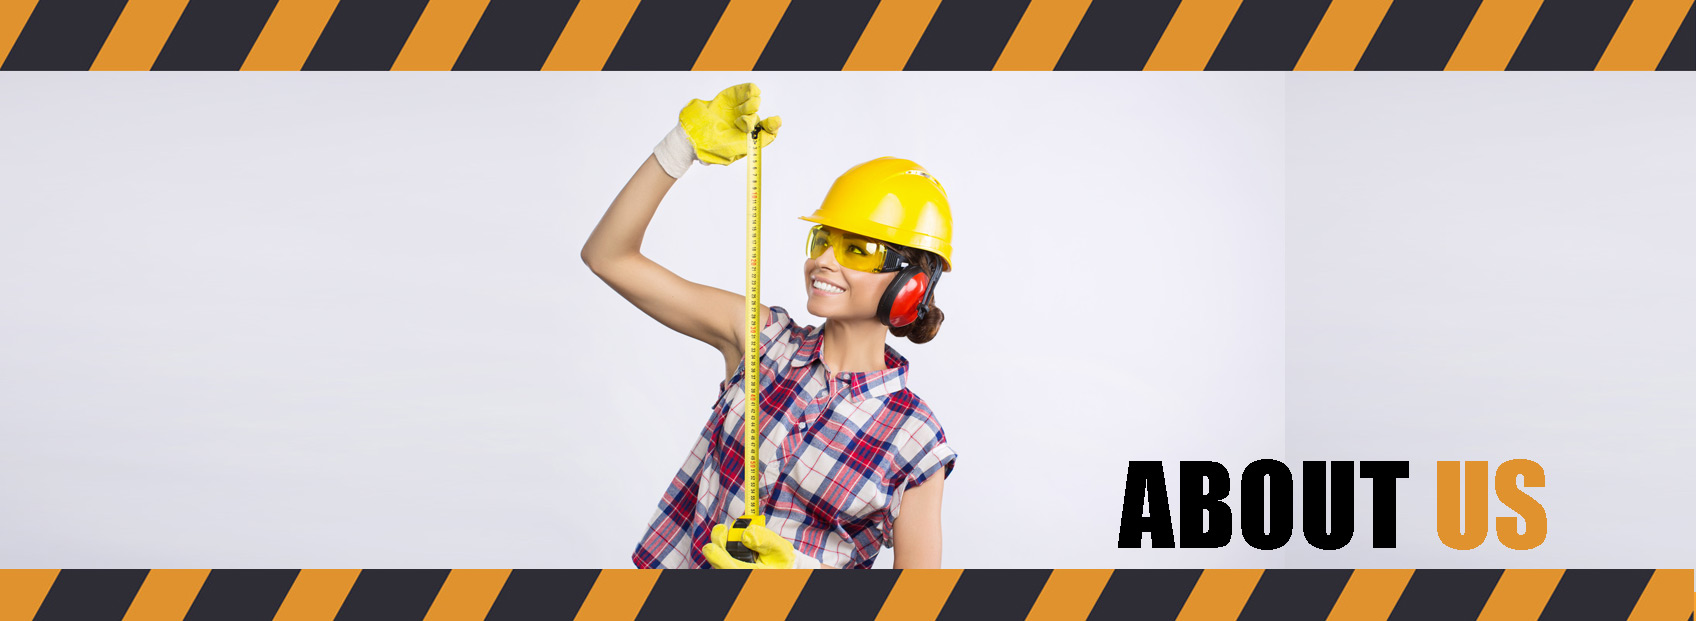 about-us-fork-lift-training